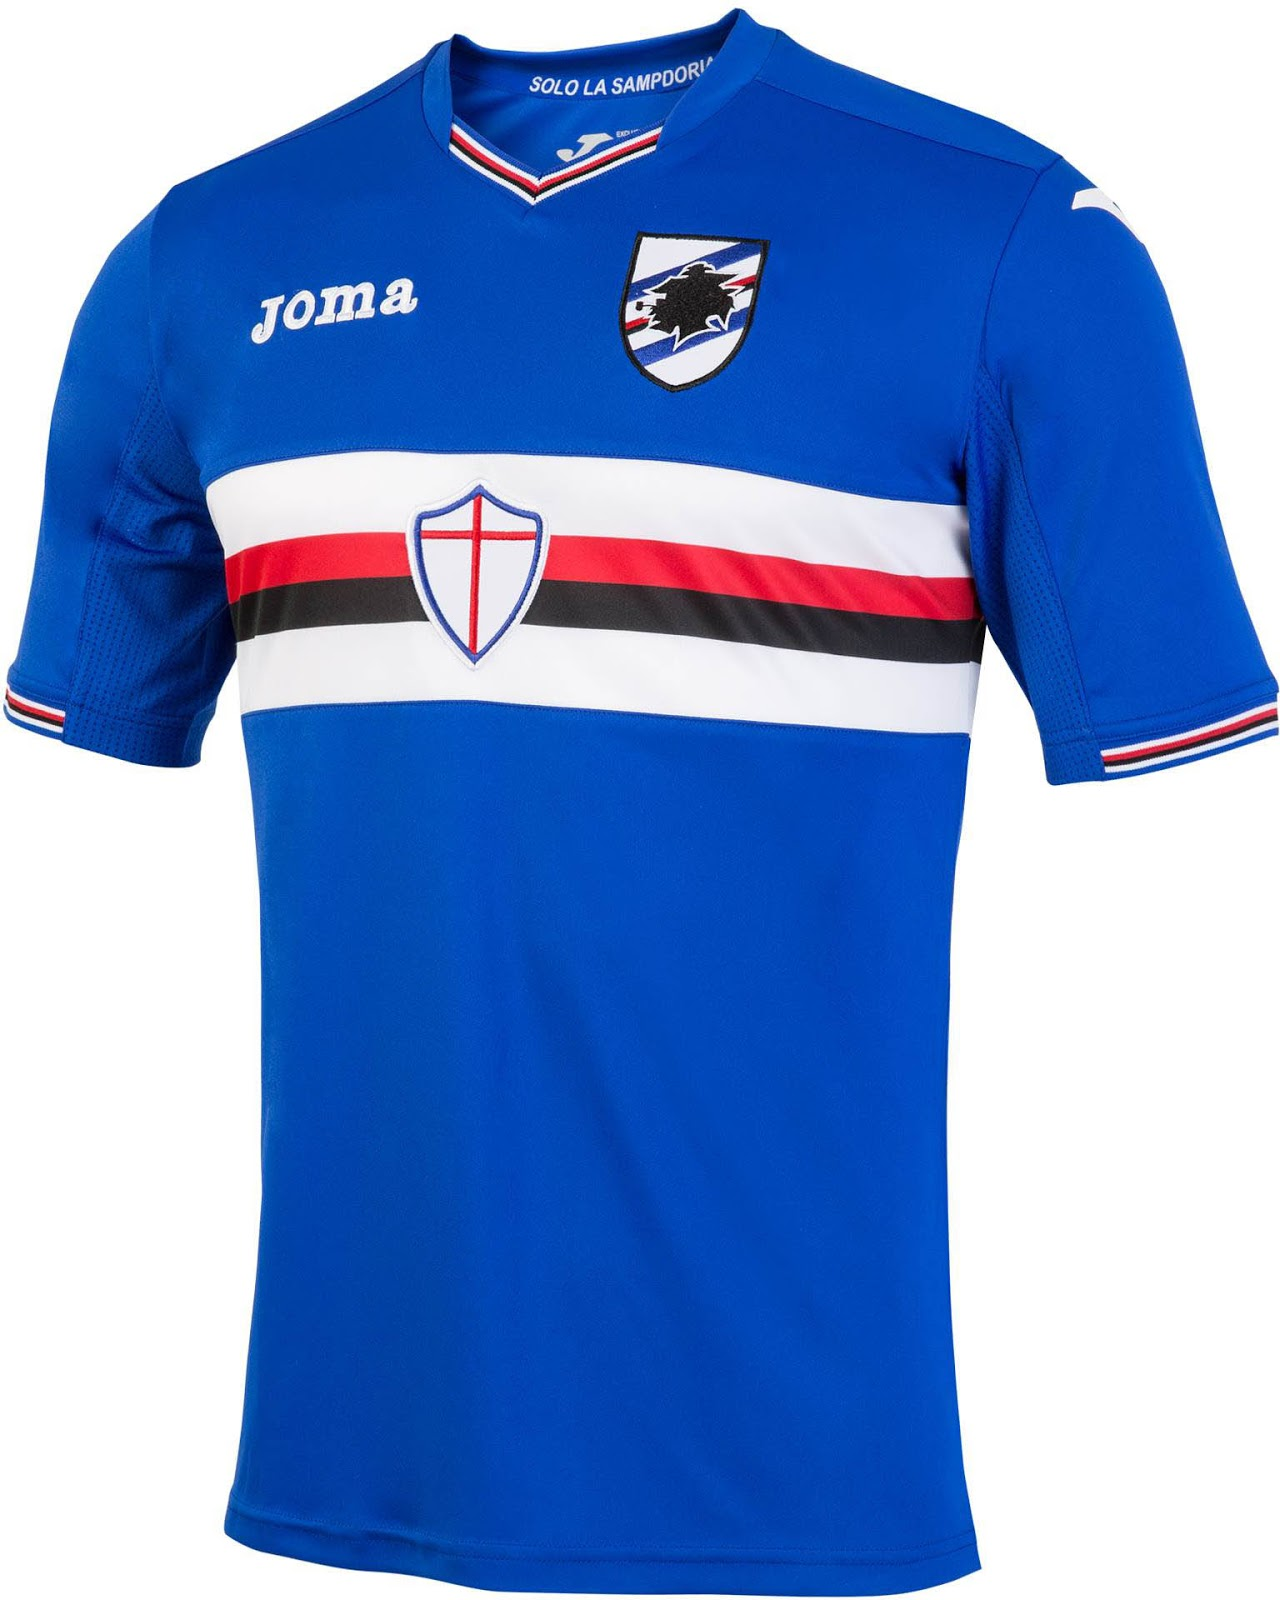 Sampdoria 16-17 Home, Away and Third Kits Released - Footy ...